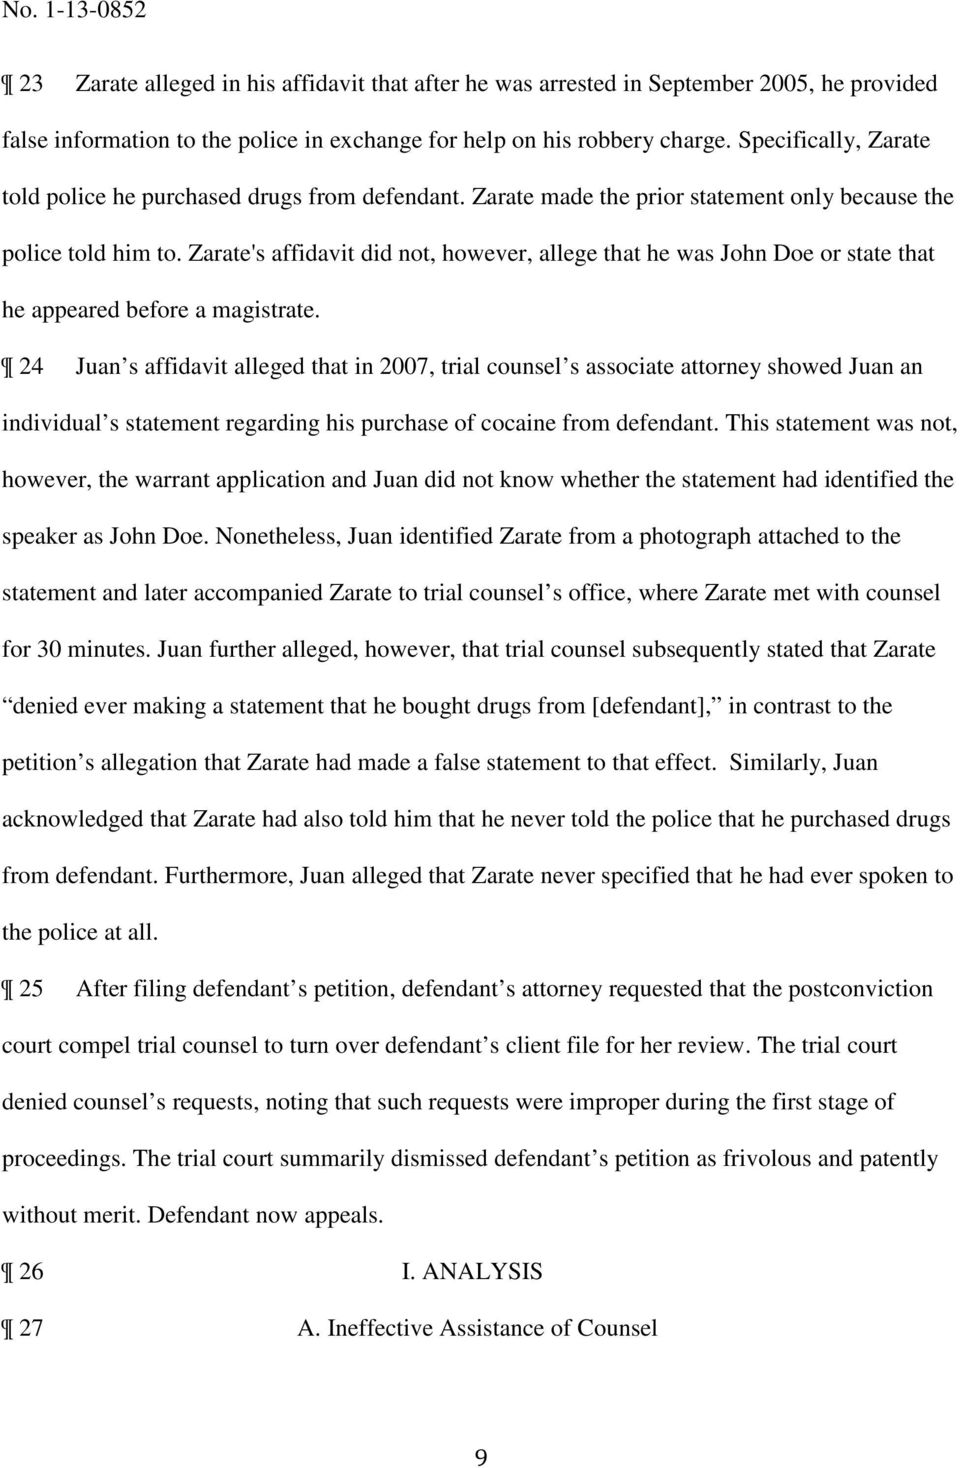 Zarate's affidavit did not, however, allege that he was John Doe or state that he appeared before a magistrate.